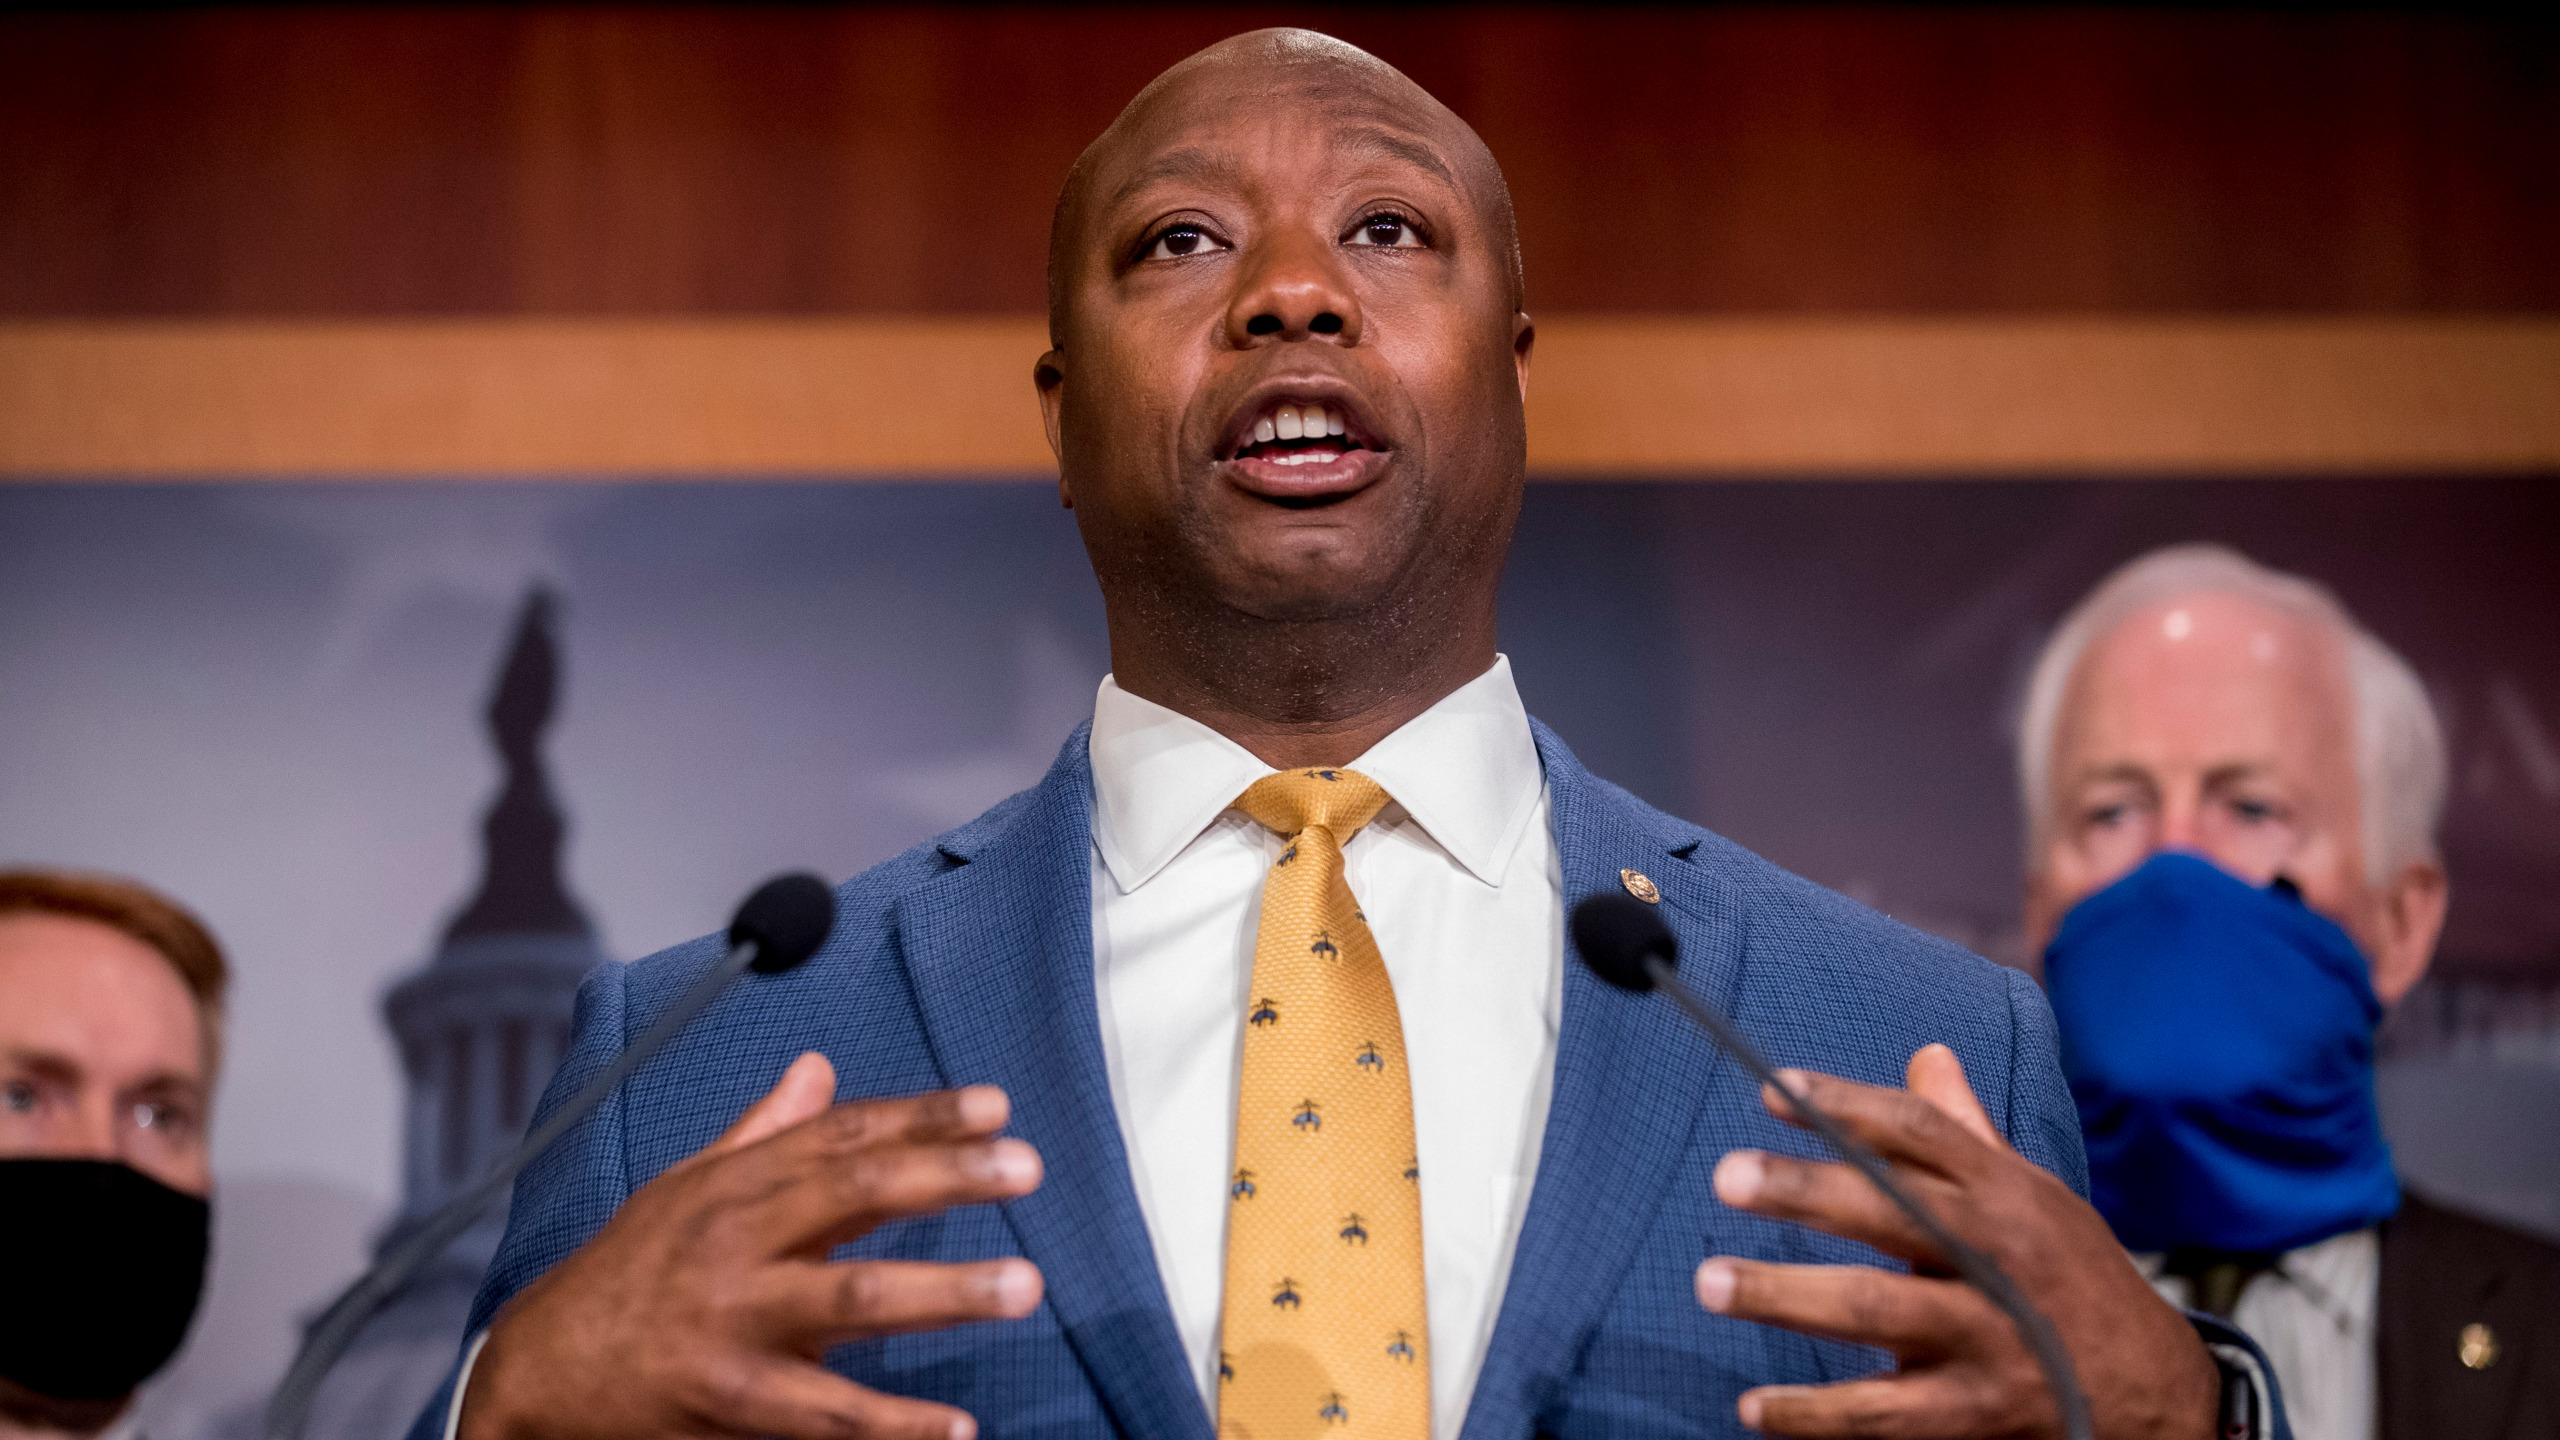 In this June 17, 2020, file photo, Sen. Tim Scott, R-S.C., accompanied by Republican senators speaks at a news conference to announce a Republican police reform bill on Capitol Hill in Washington. Initially reluctant to speak on race, Scott is now among the Republican Party's most prominent voices teaching his colleagues what it's like to be a Black man in America. (AP Photo/Andrew Harnik, File)